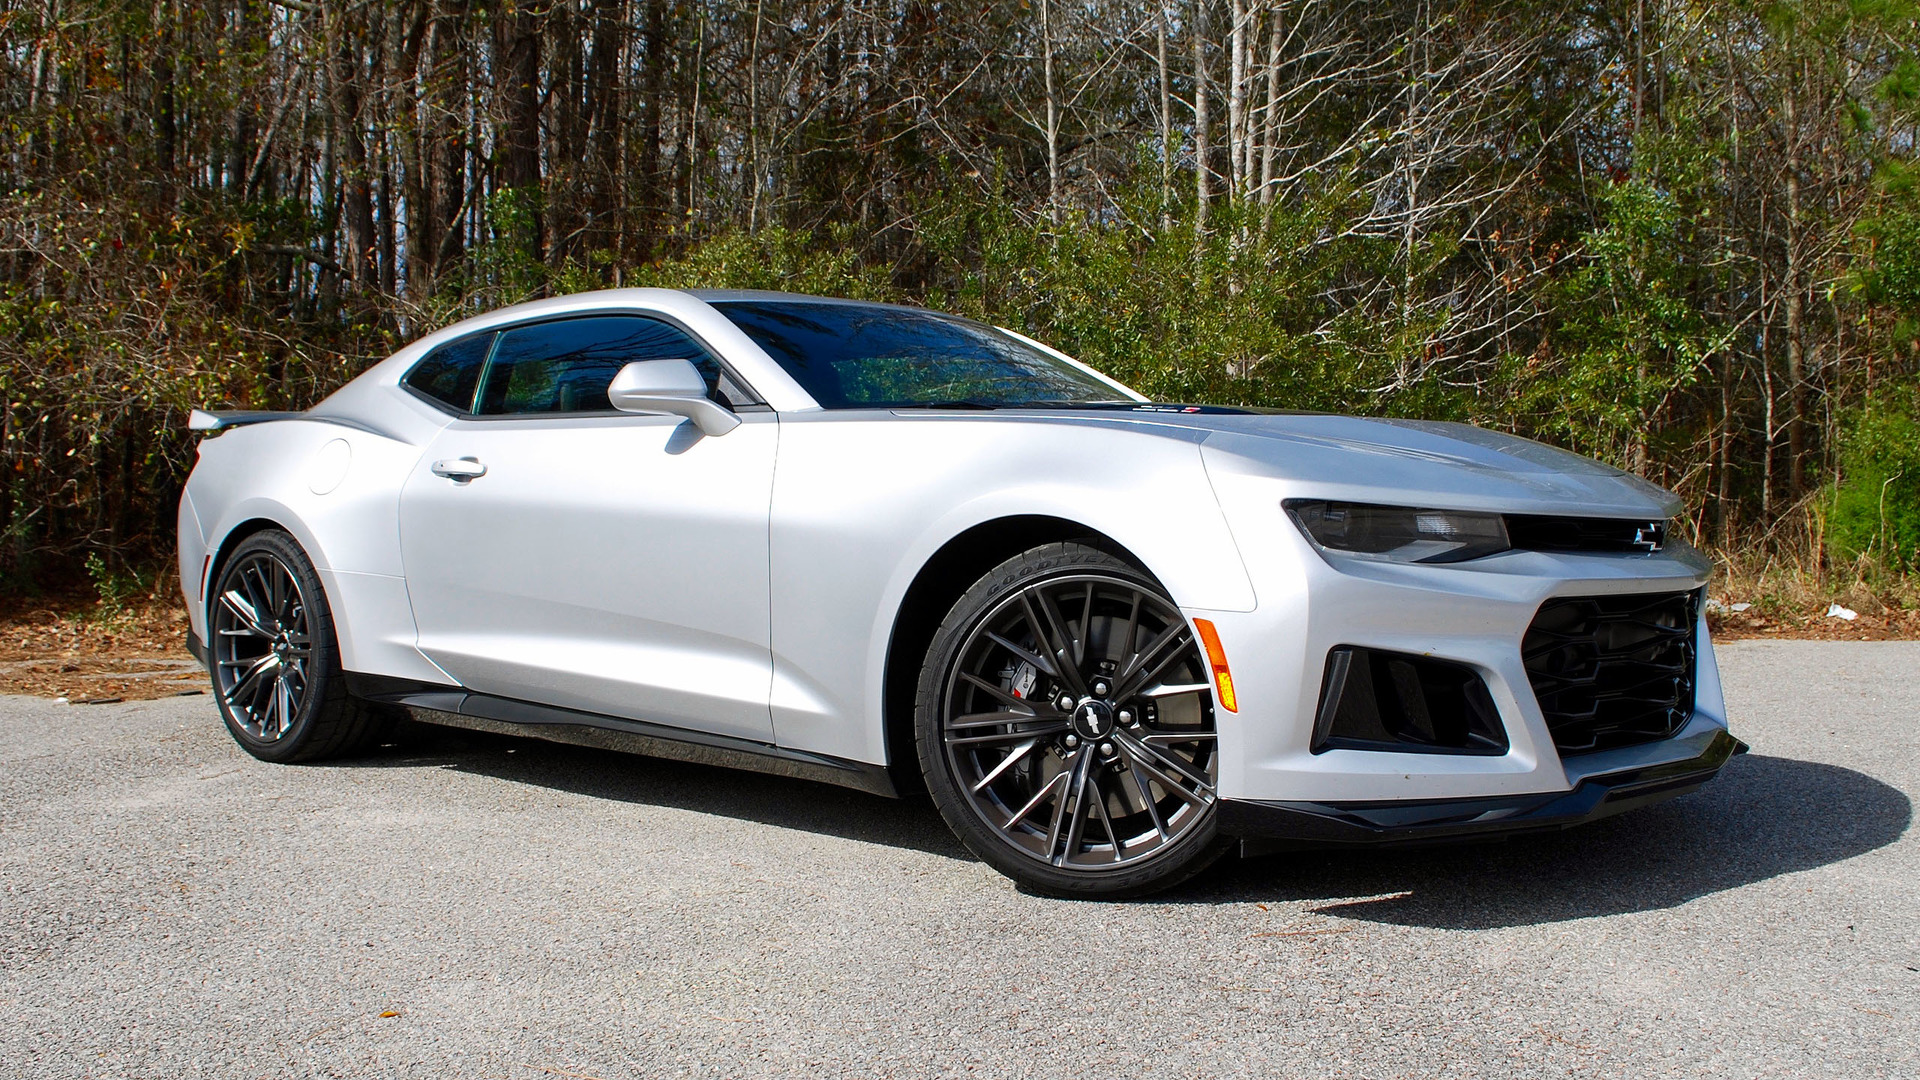 What Does Camaro Mean >> 2017 Chevy Camaro Zl1 First Drive Populist Power And Polish